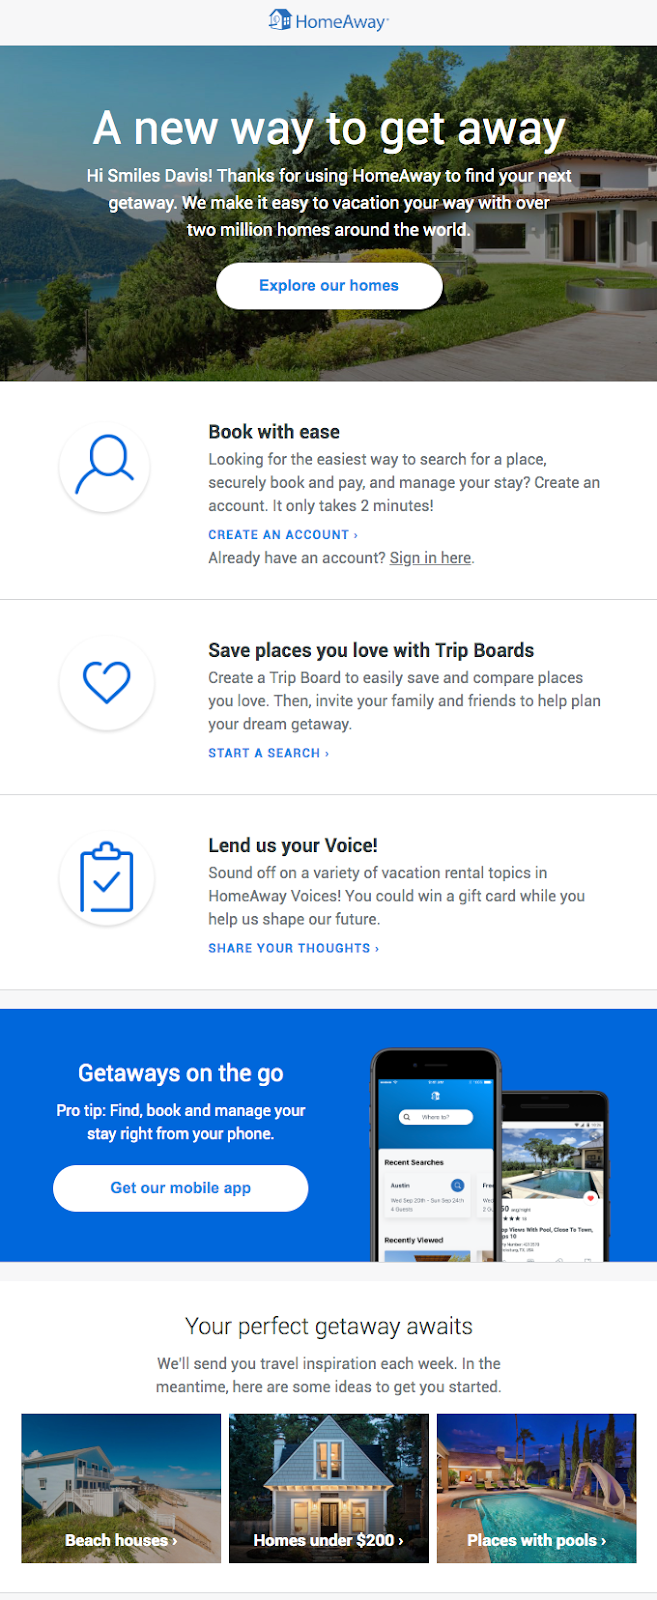 onboarding email example from Home Away